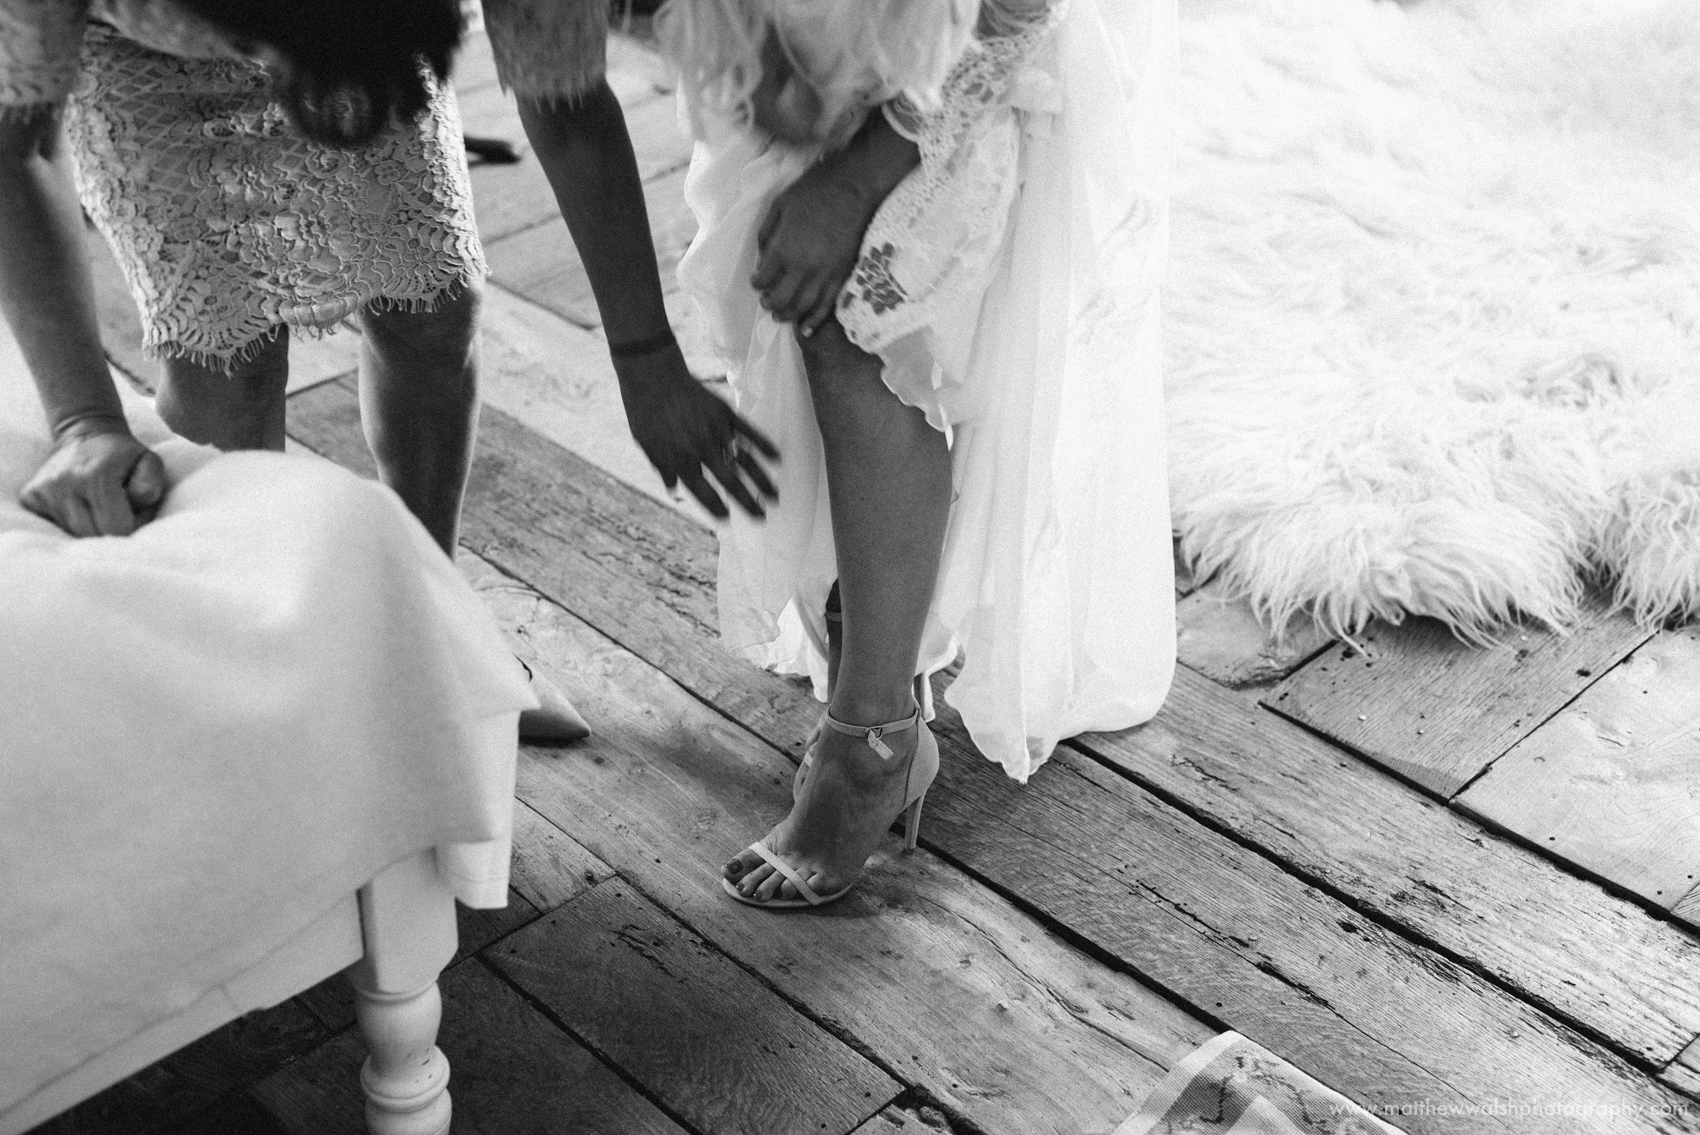 A black and white image of the bride putting her wedding shoes on